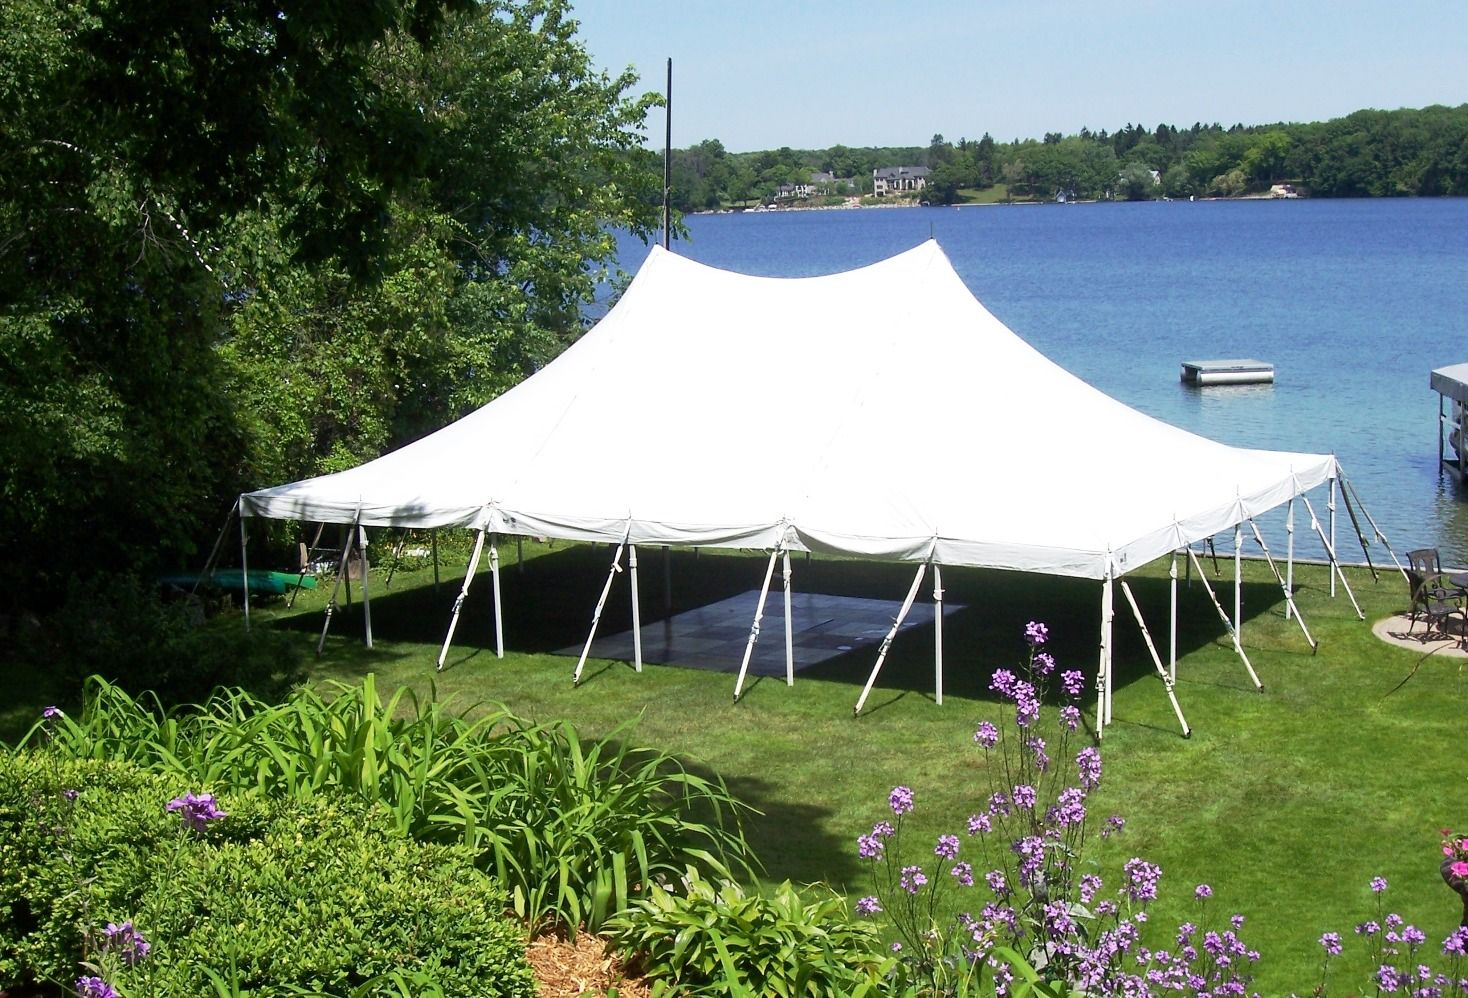 30 X 45 Pole Tent On Lakefront A Beautiful View For Any Birthday Wedding Corporate Event Or Graduation 844 Tent Pro Tent Tent Rentals Party Tent